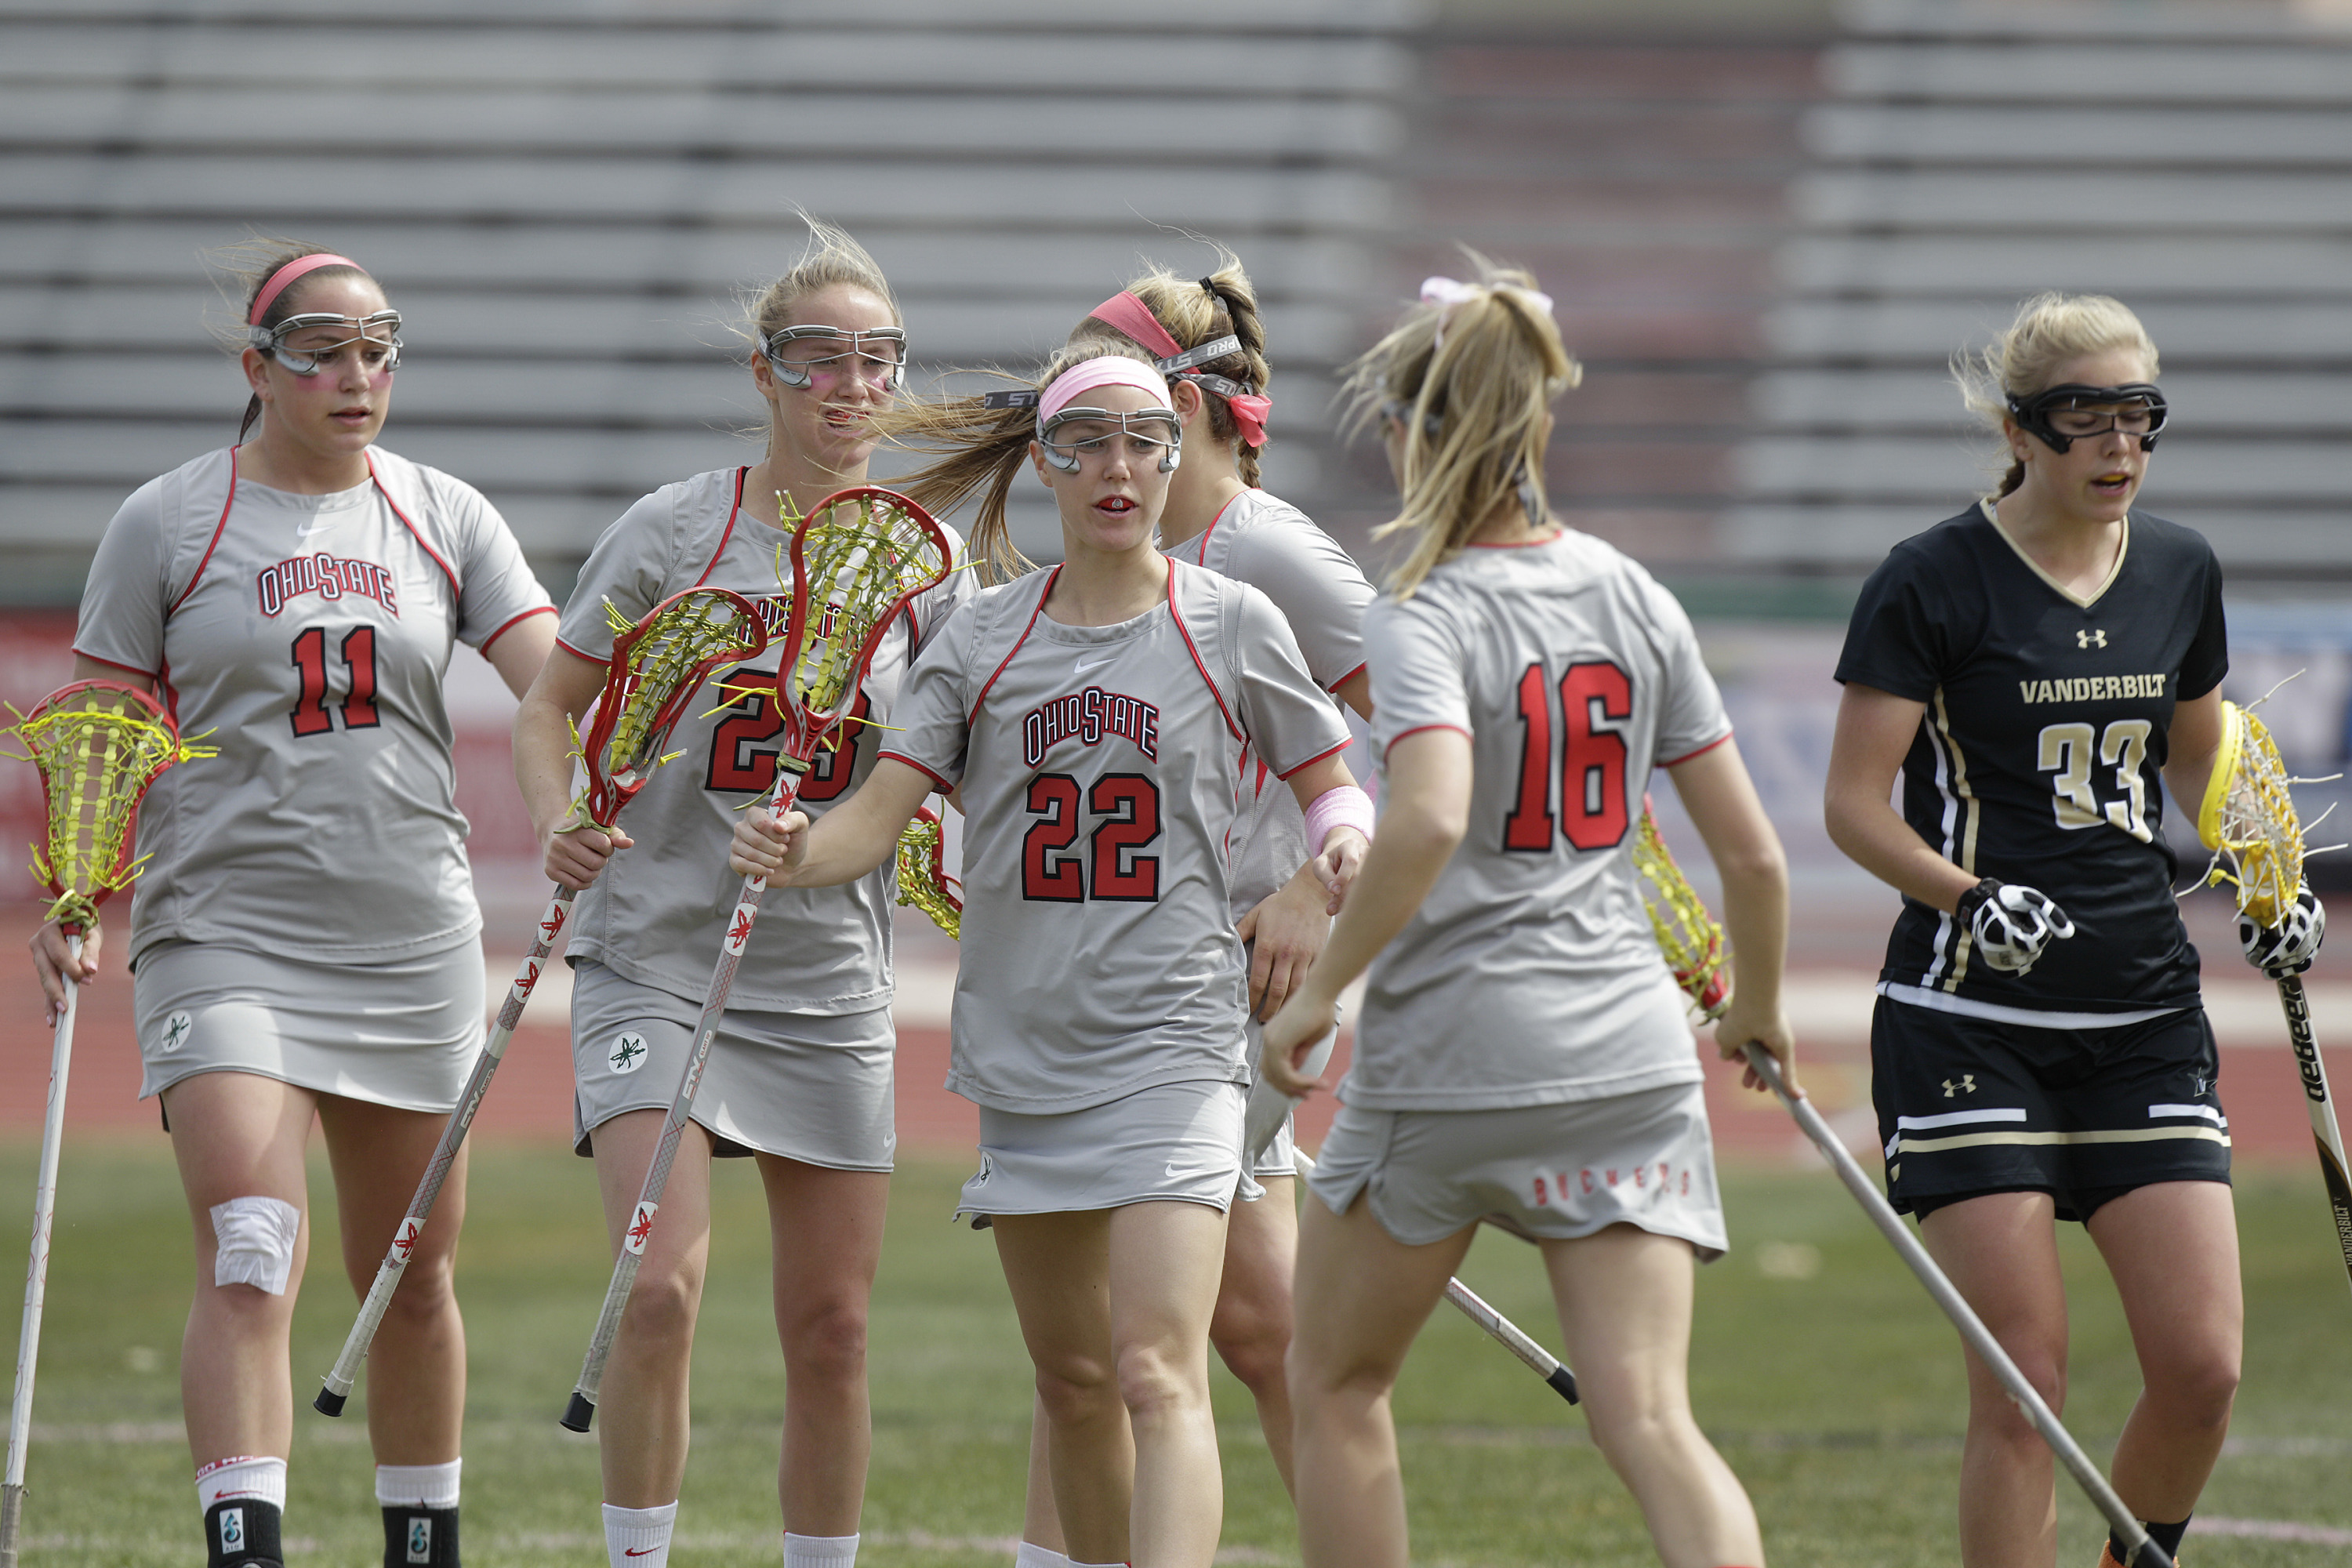 Ohio State women's lacrosse vs Vanderbilt Sunday, April 7, 2013, in Columbus, Ohio. (Photo/Jay LaPrete)